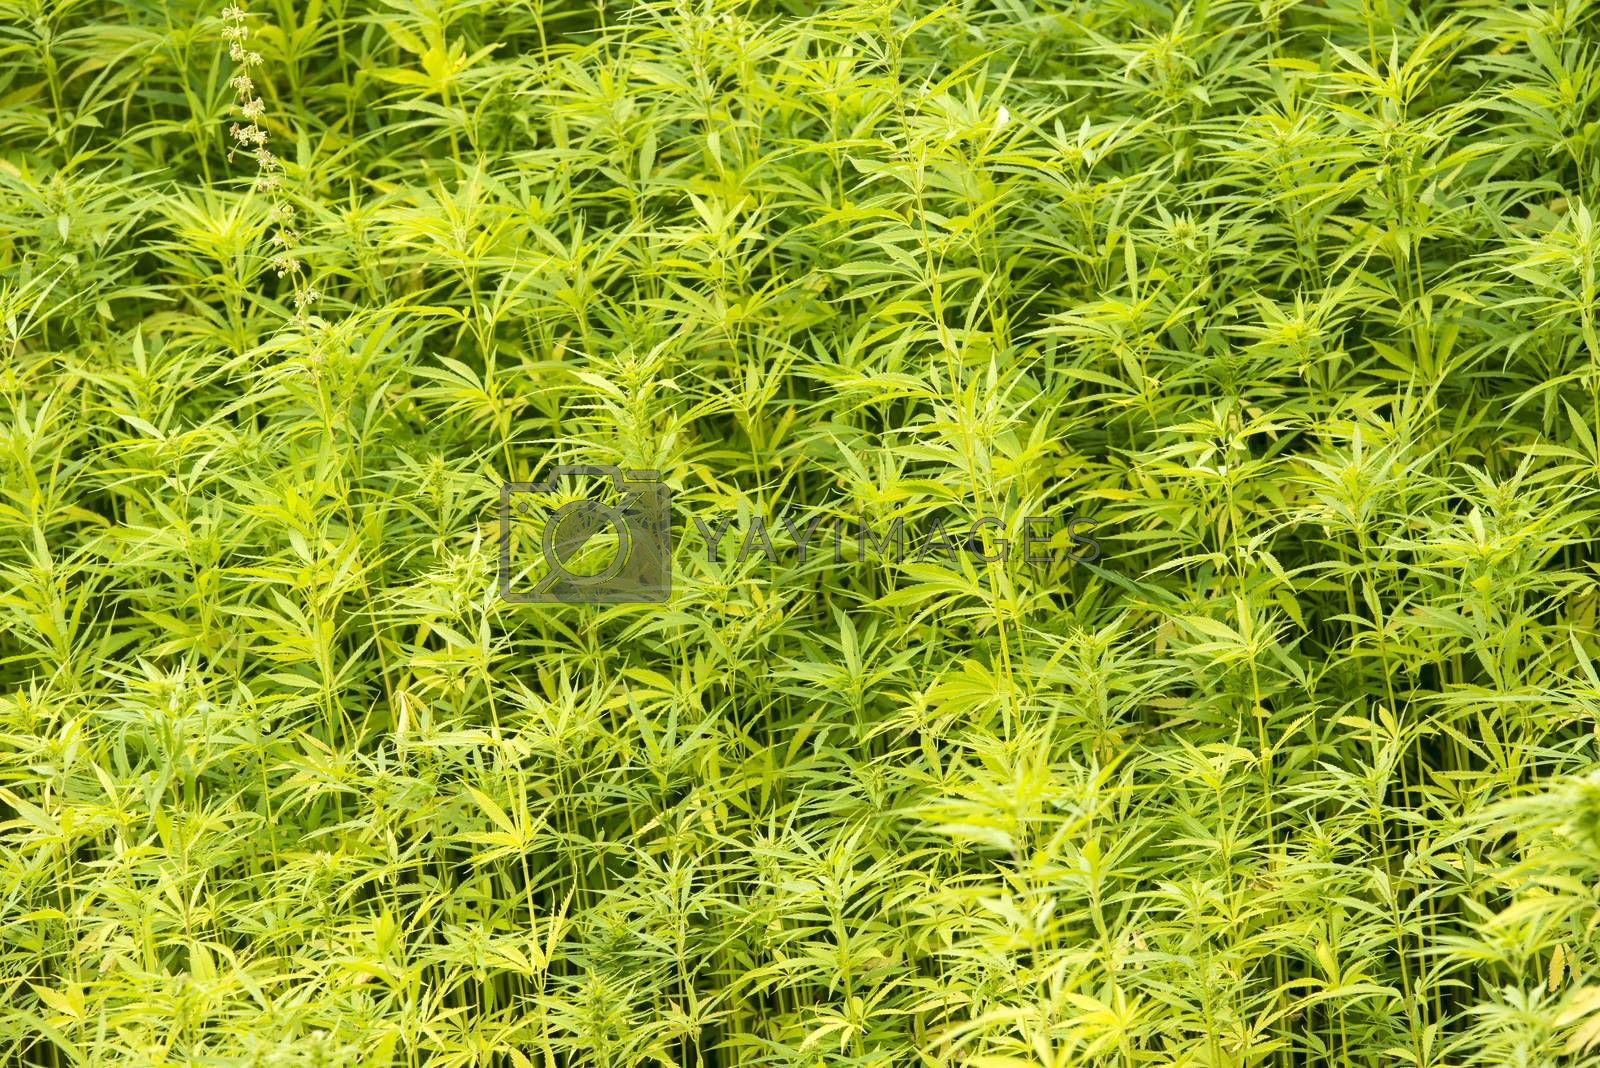 Royalty free image of Marijuana plants in the wild in the Netherlands by Tofotografie